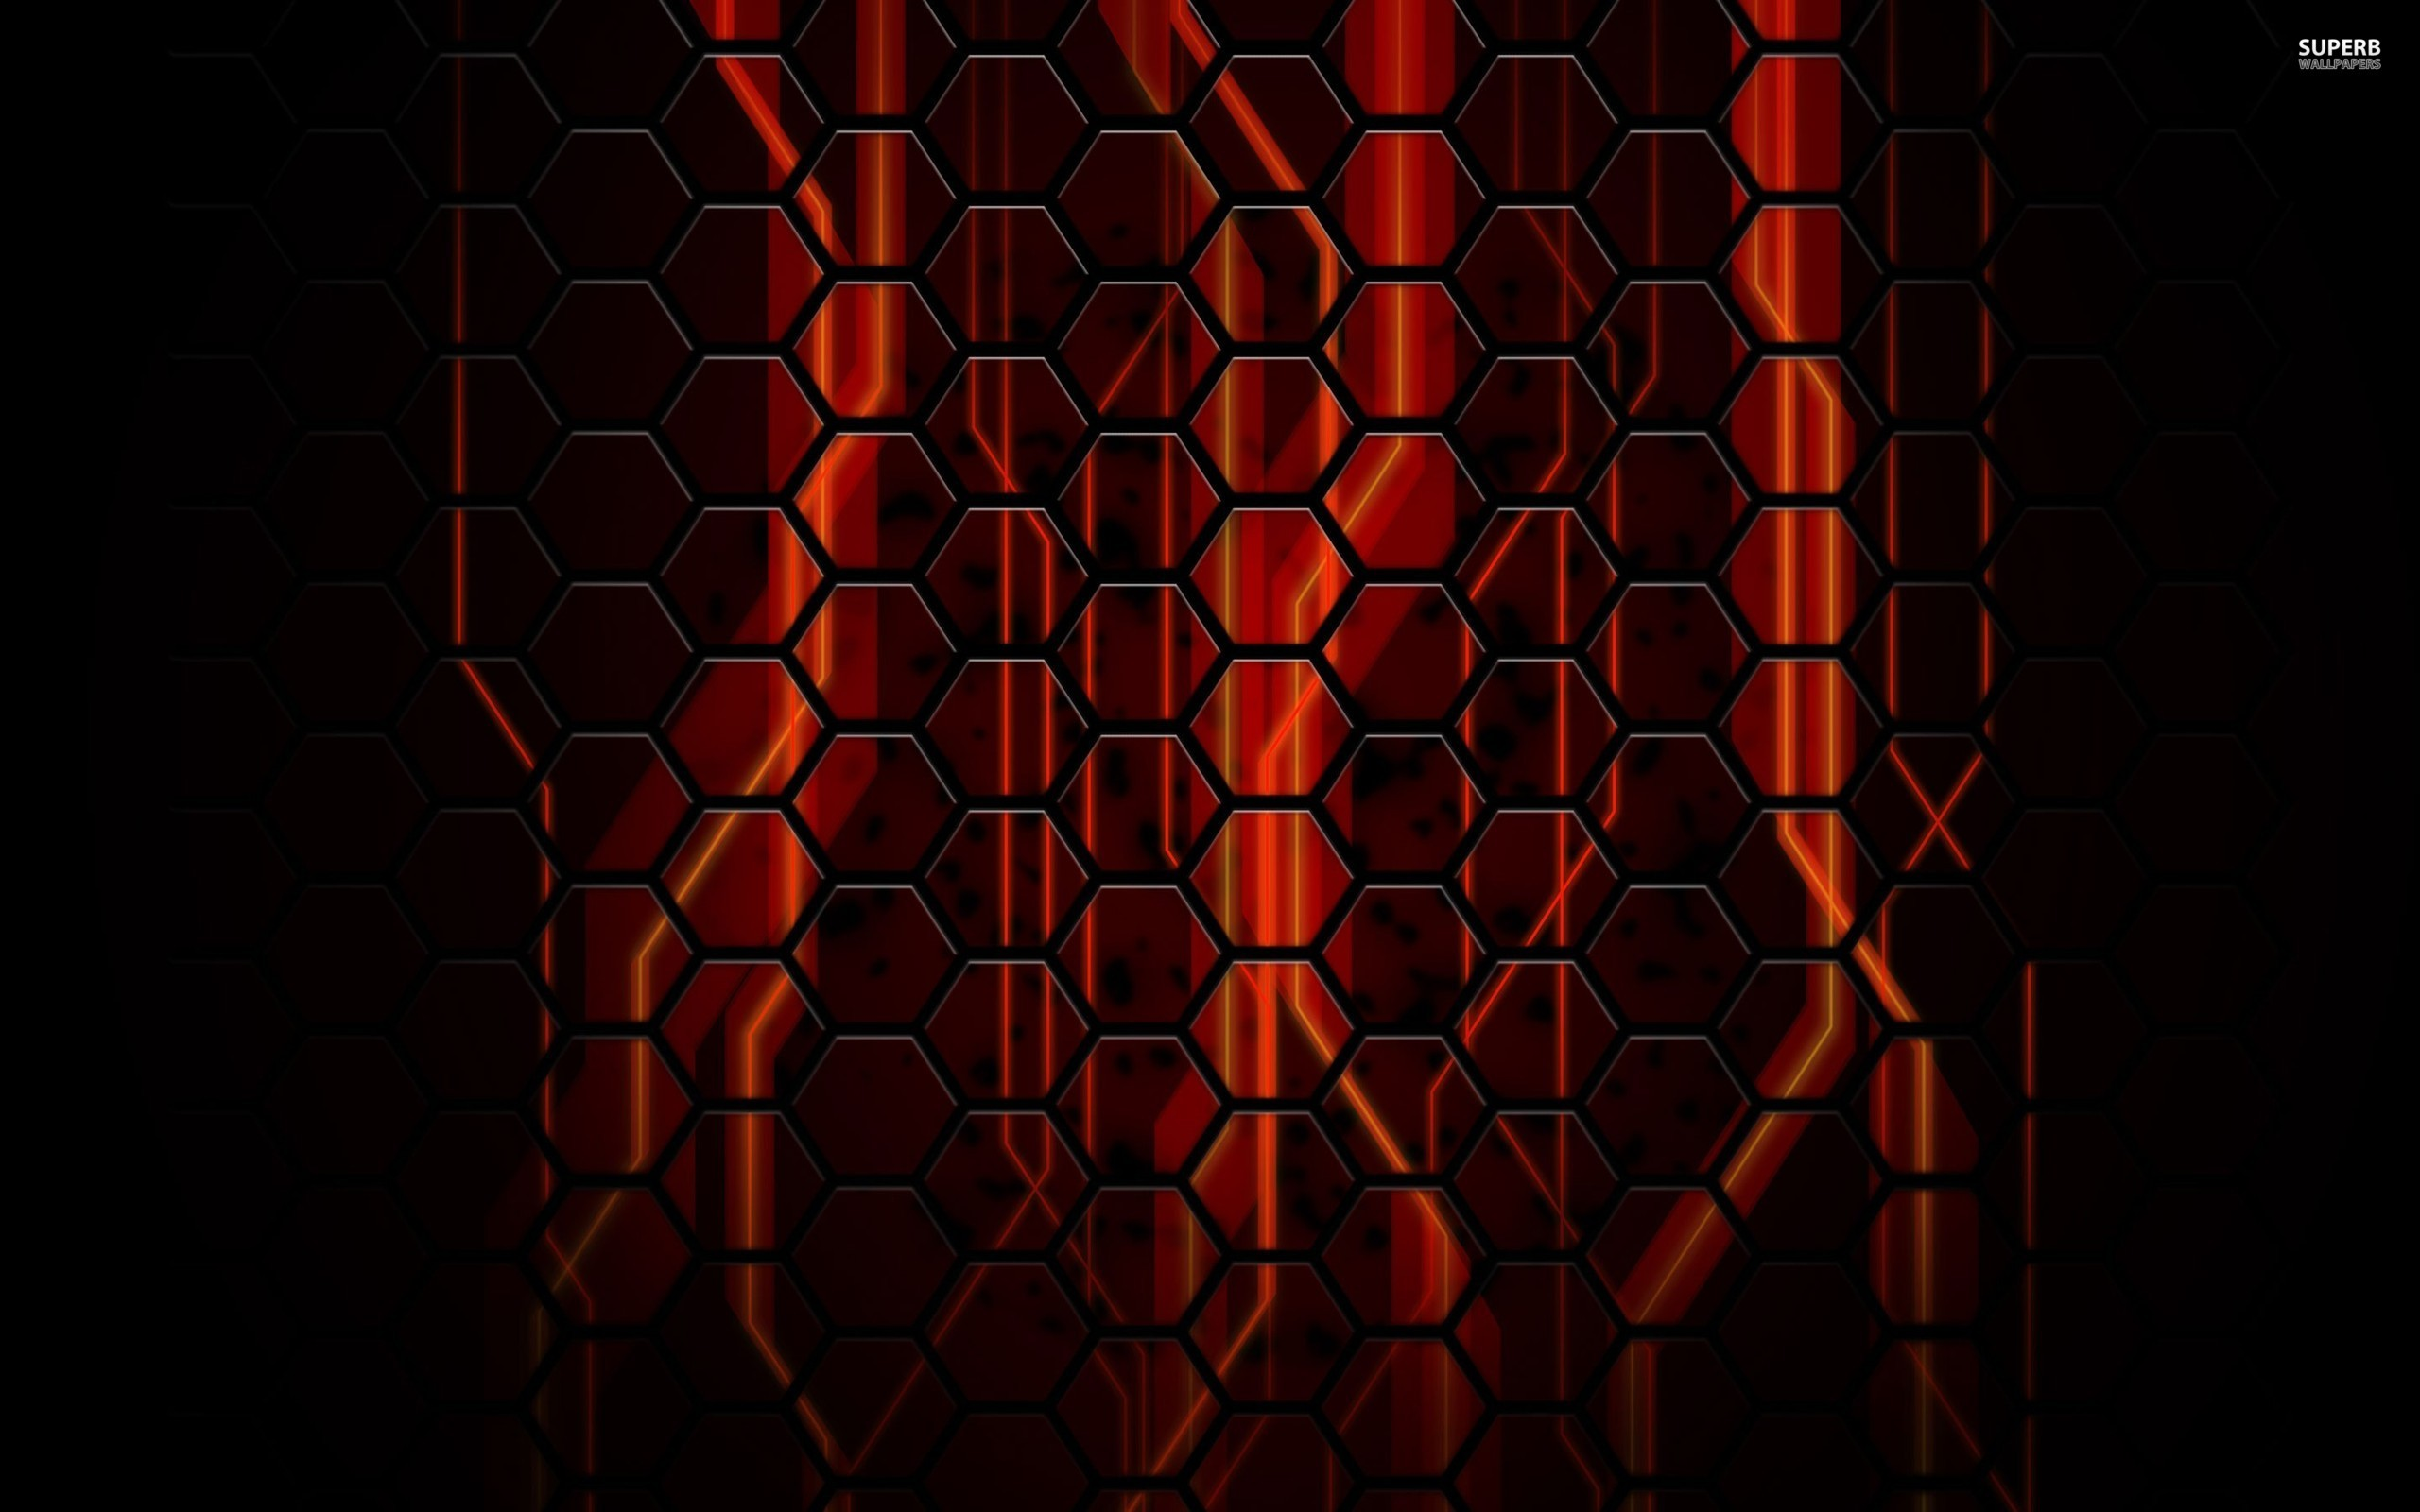 honeycomb background hd hexagon wallpapers android backgrounds social desktop pattern abstract mobile tous fonds les iphone amazing neon dcran hive